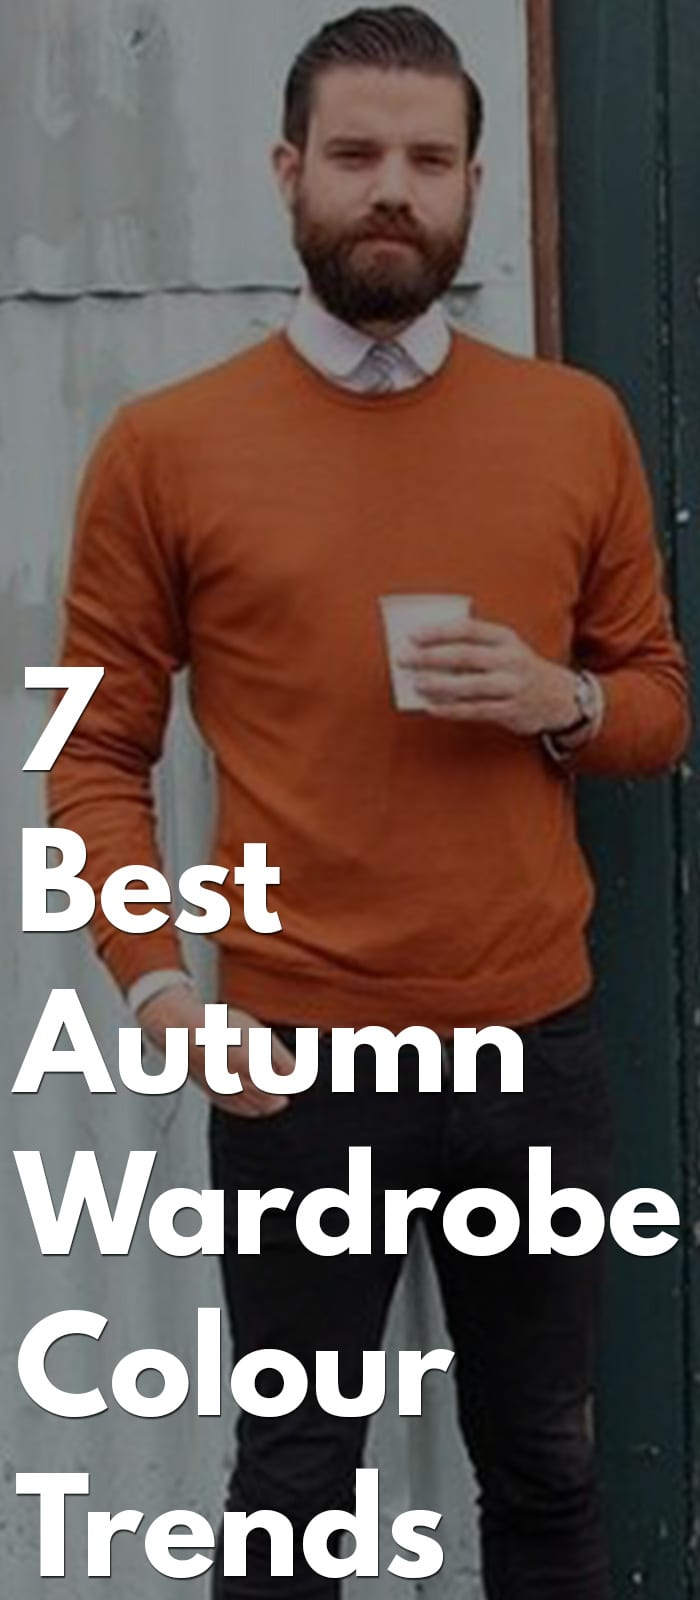 Amazing Autumn Wardrobe- 7 Trendy Colours, Style Tips, Do's & Don'ts, Etc